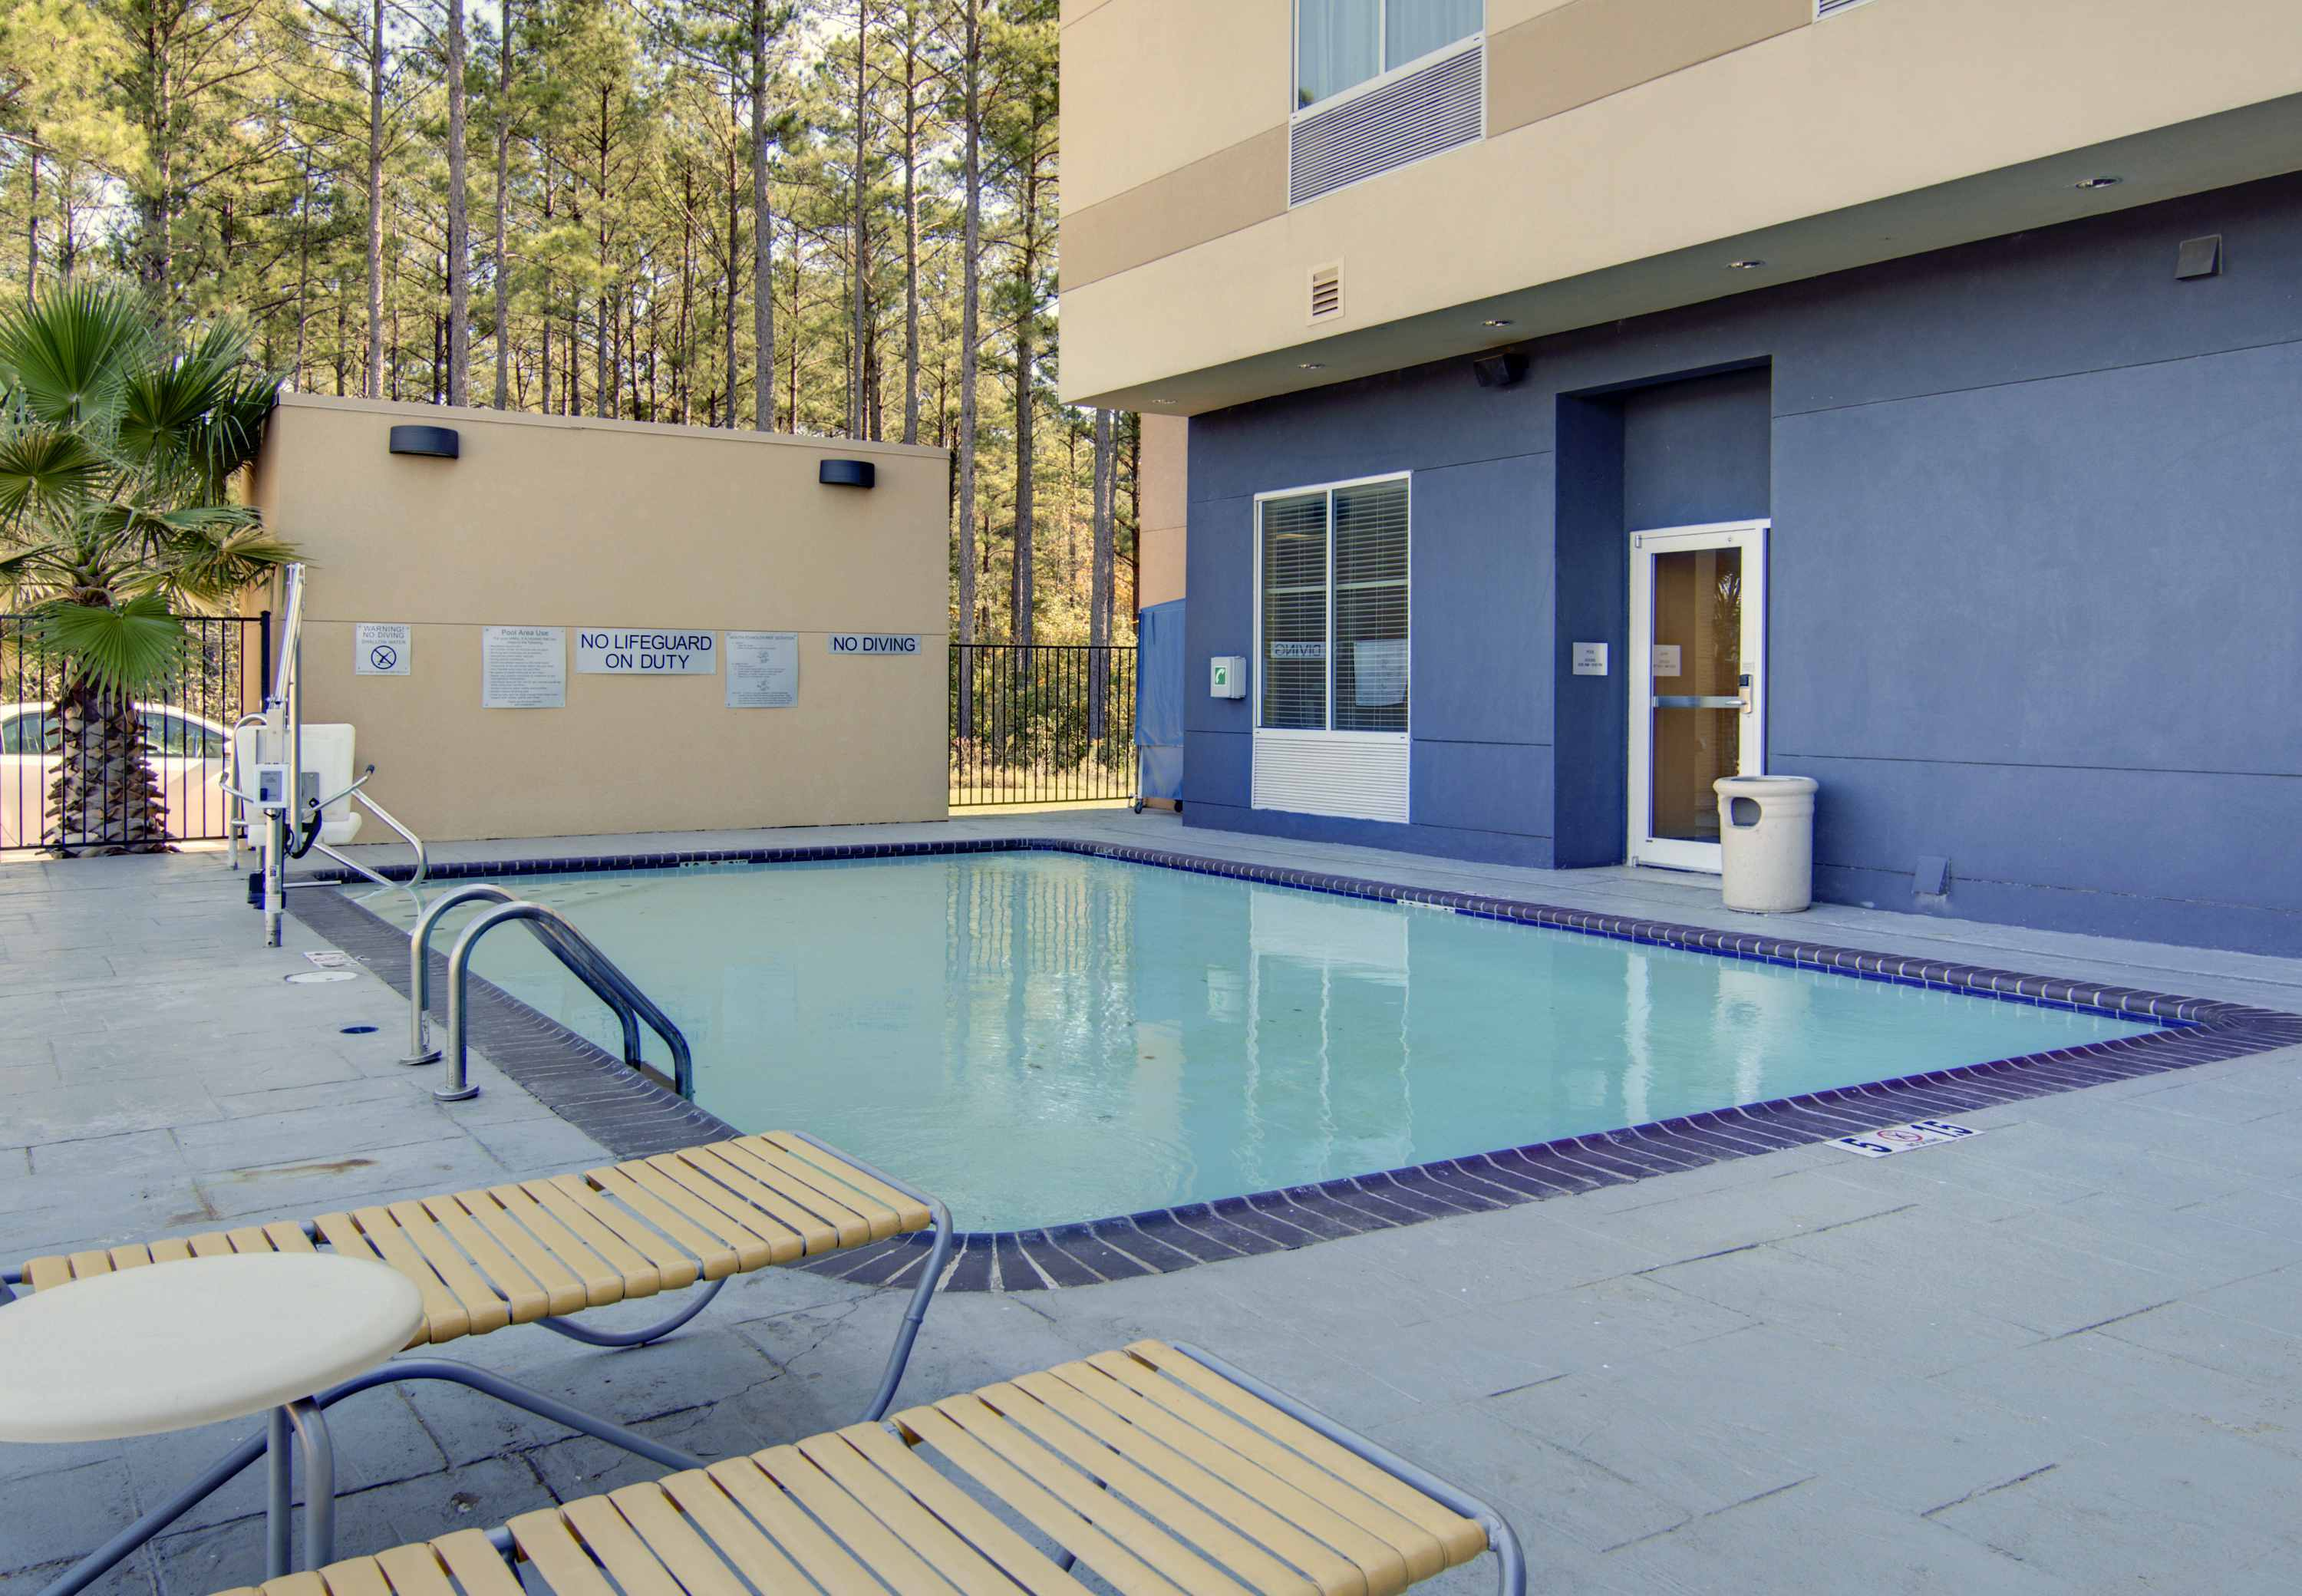 Fairfield Inn & Suites by Marriott Natchitoches image 3